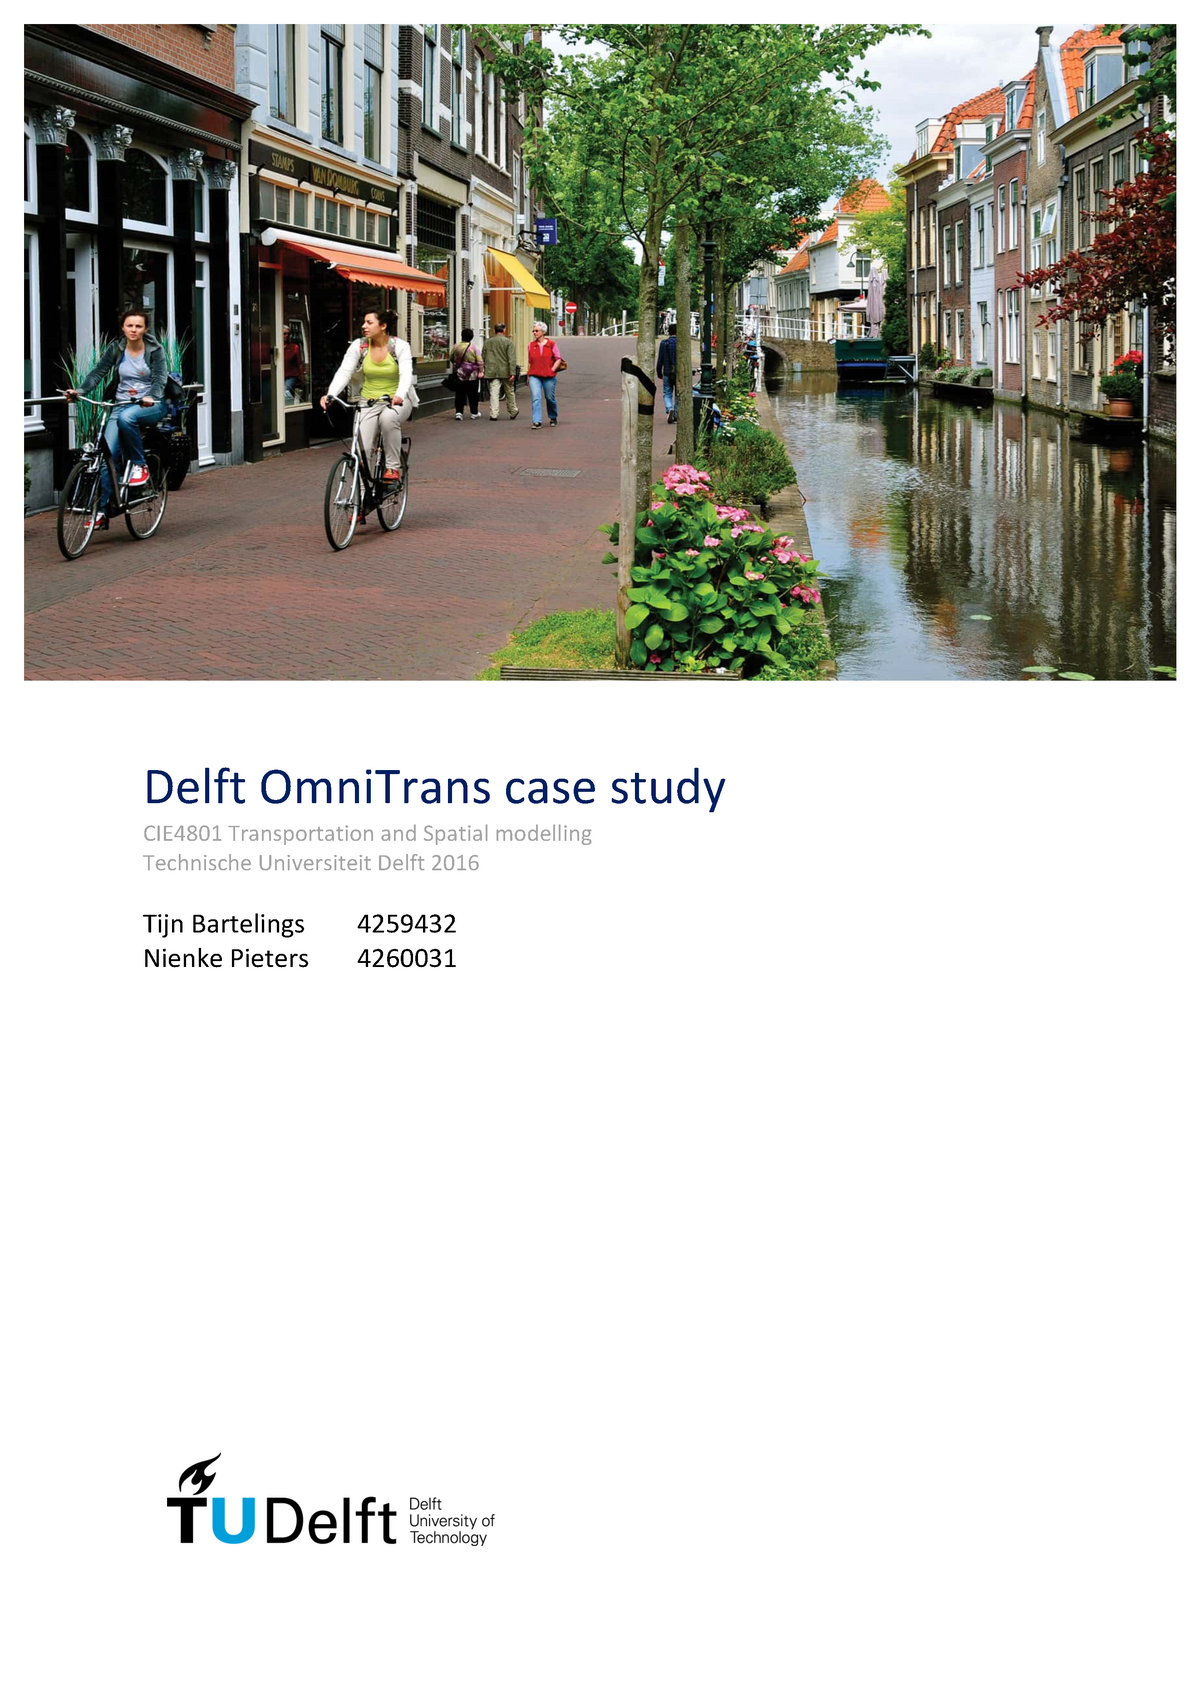 Report Omnitrans assignment - CIE4801: Transportation and